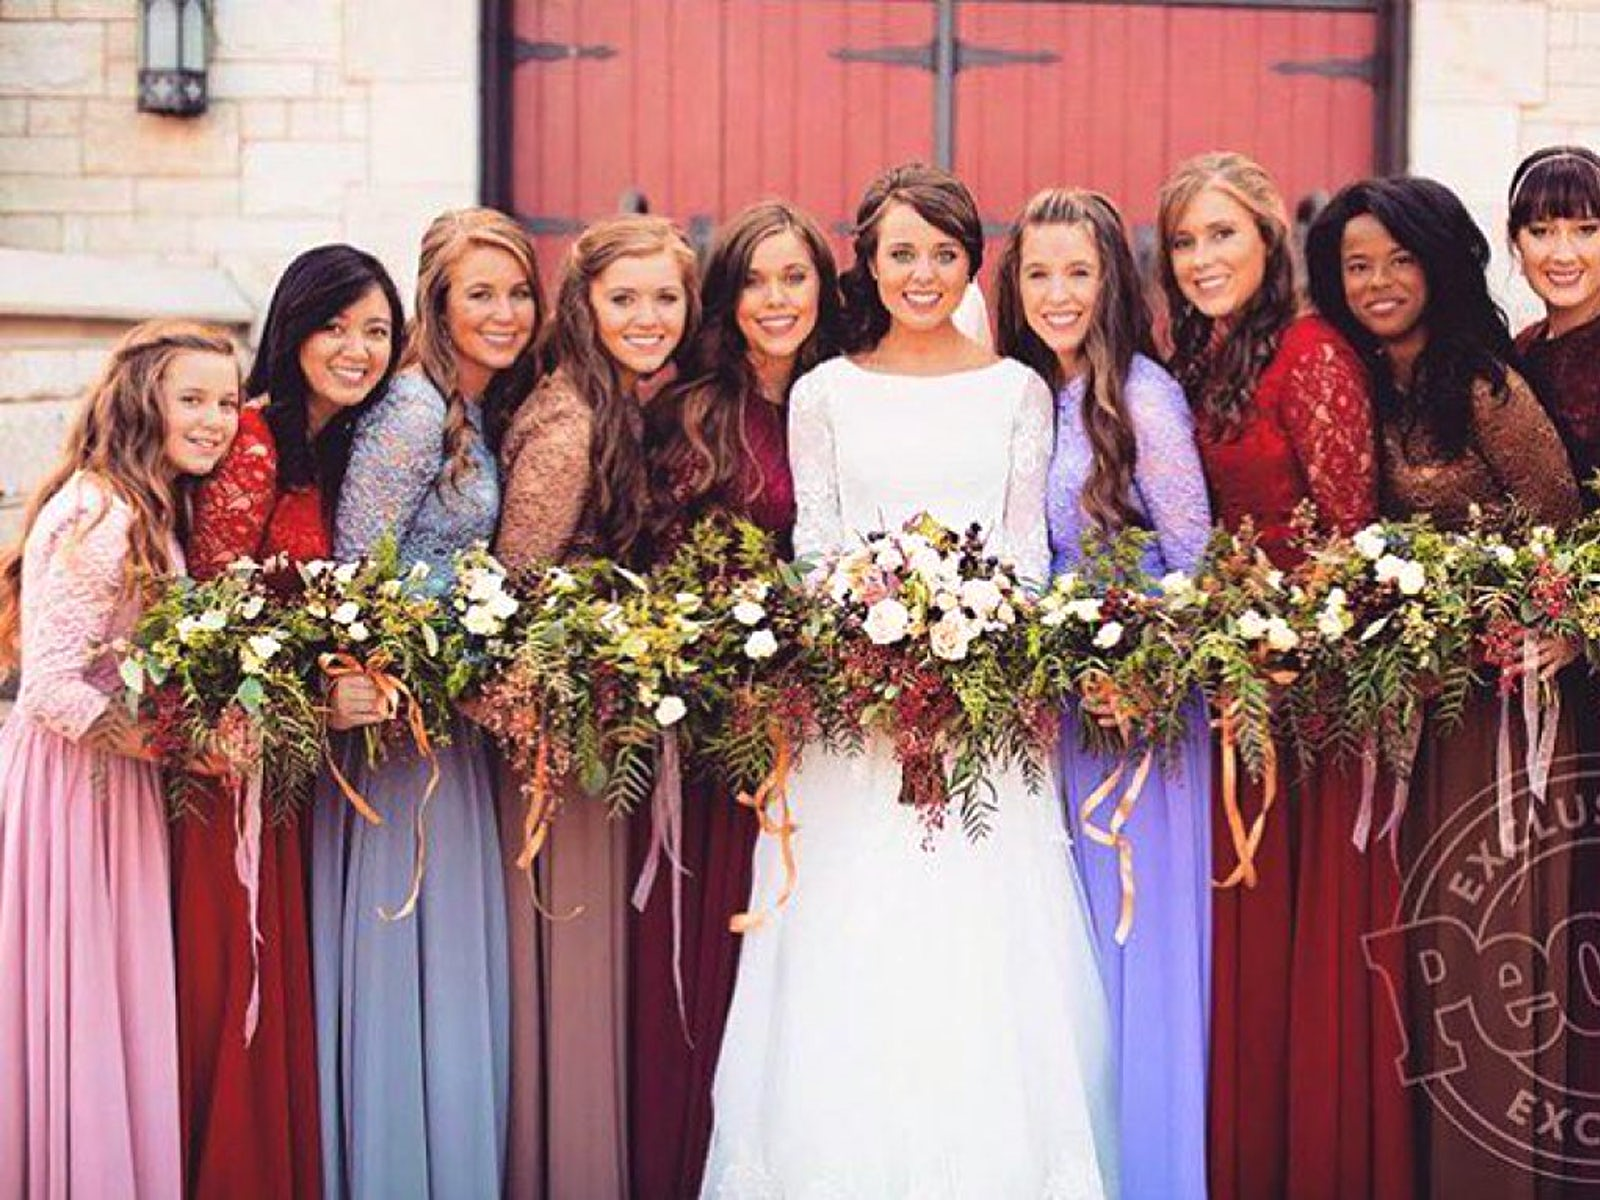 Jinger Duggar: I thought I'd see Jeremy Vuolo on our wedding